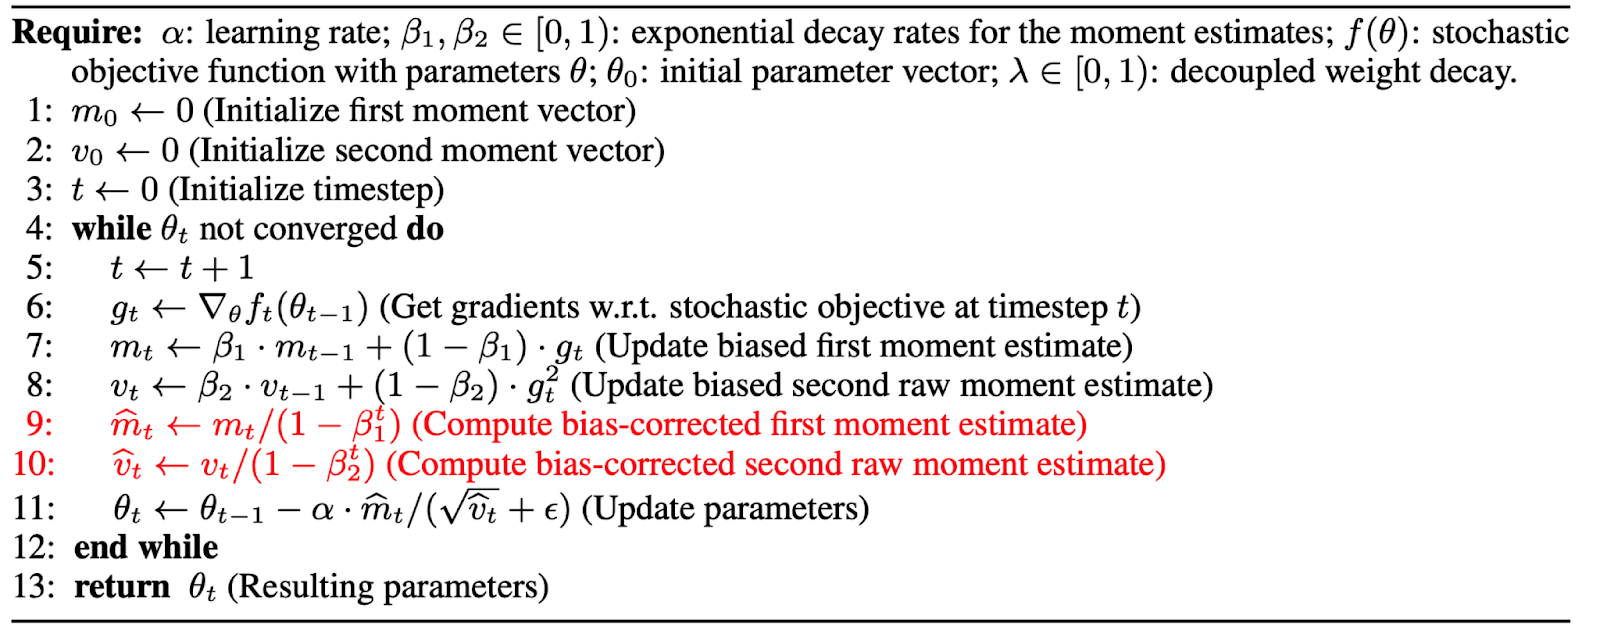 ASAPP—BERTAdam omits lines 9 and 10 which are used to correct the biases in the first and second moment estimates.